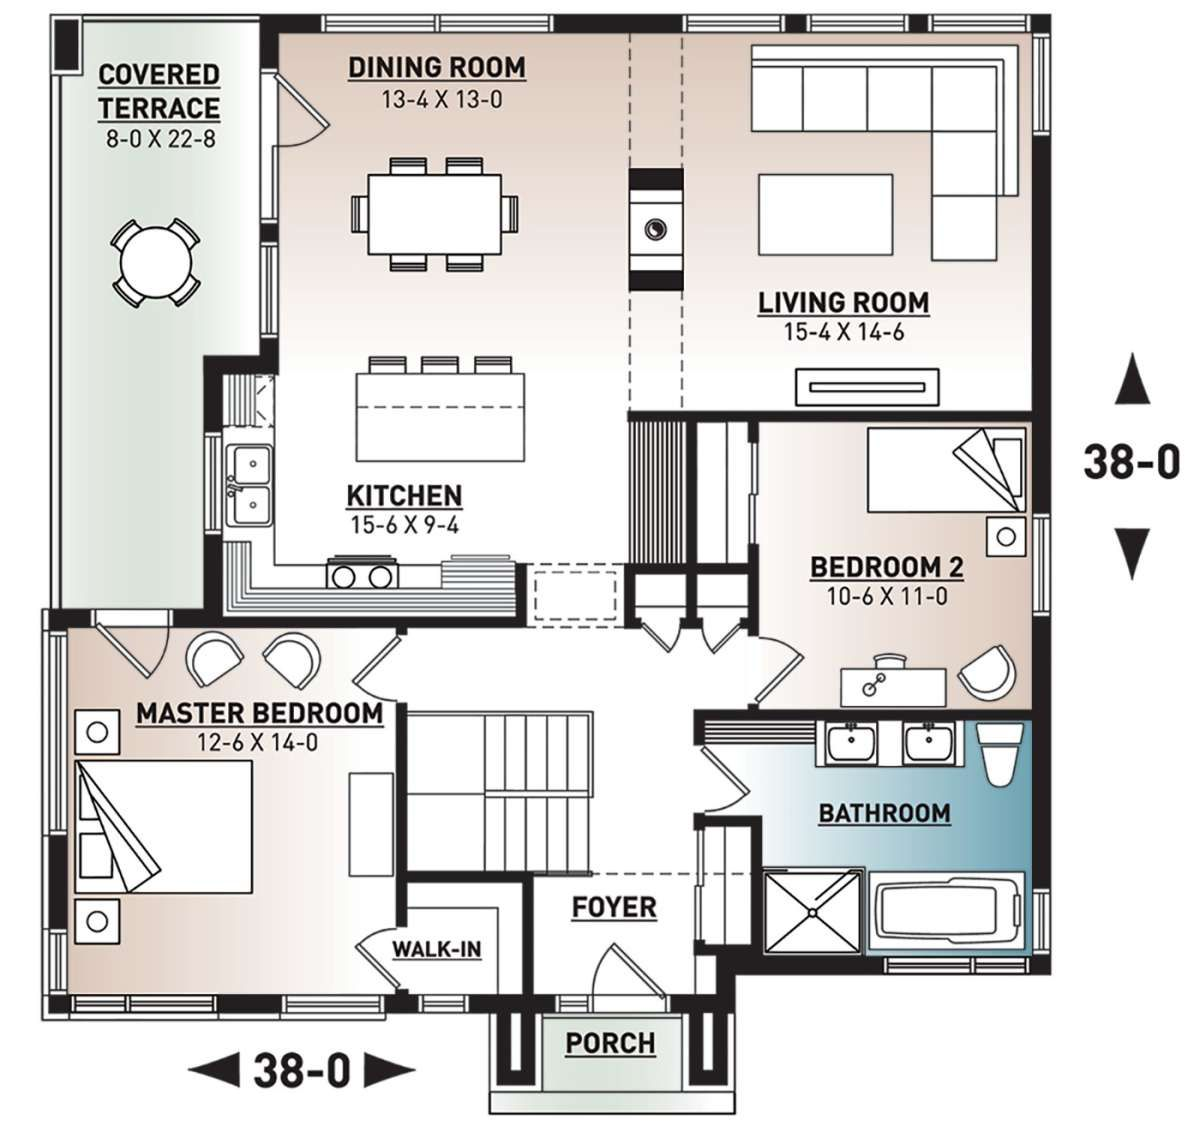 House Plan 034 01221 Contemporary Plan 1 269 Square Feet 2 Bedrooms 1 Bathroom Basement House Plans House Plans Modern Style House Plans